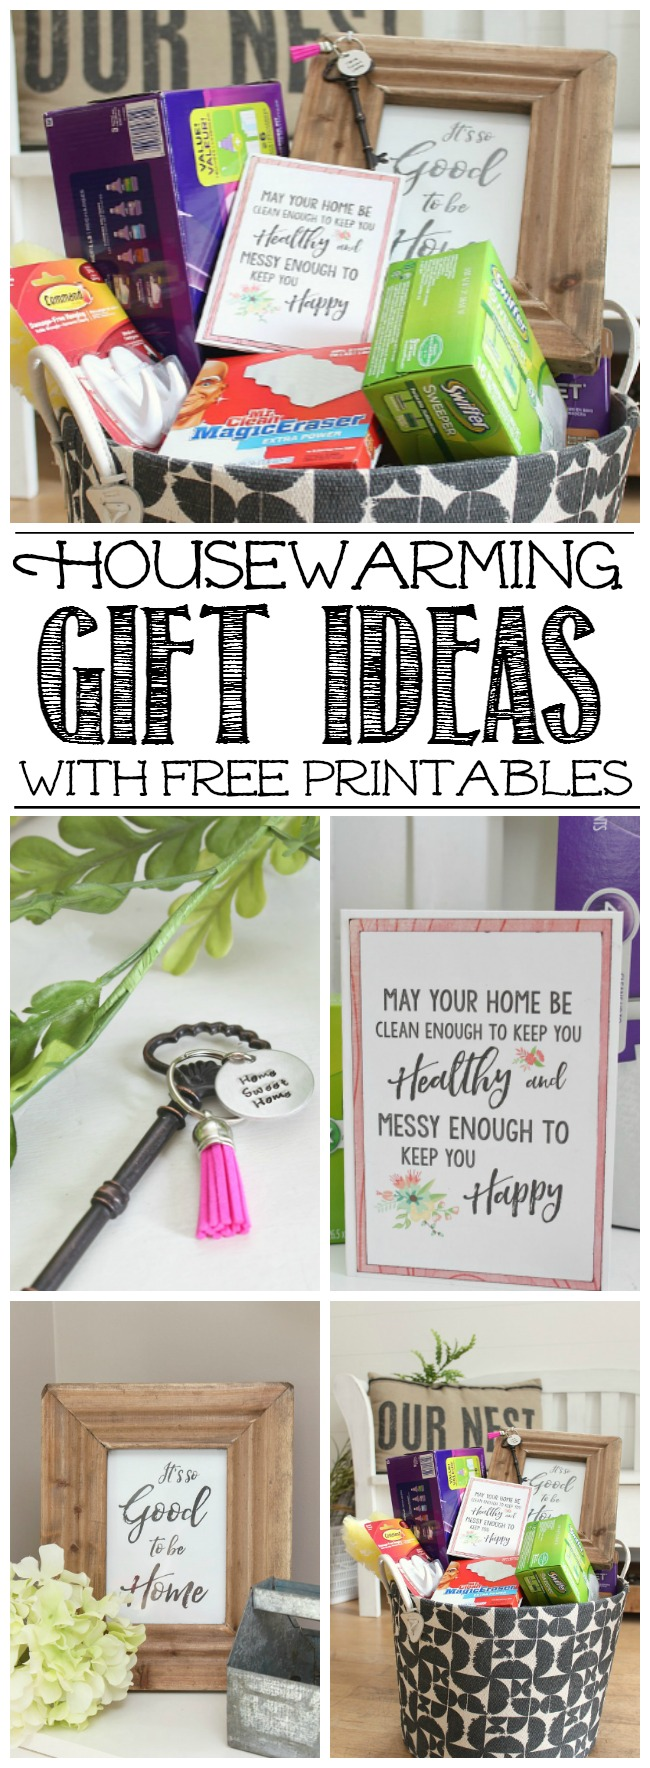 Housewarming Gift Ideas And Free Home Printables Clean And Scentsible